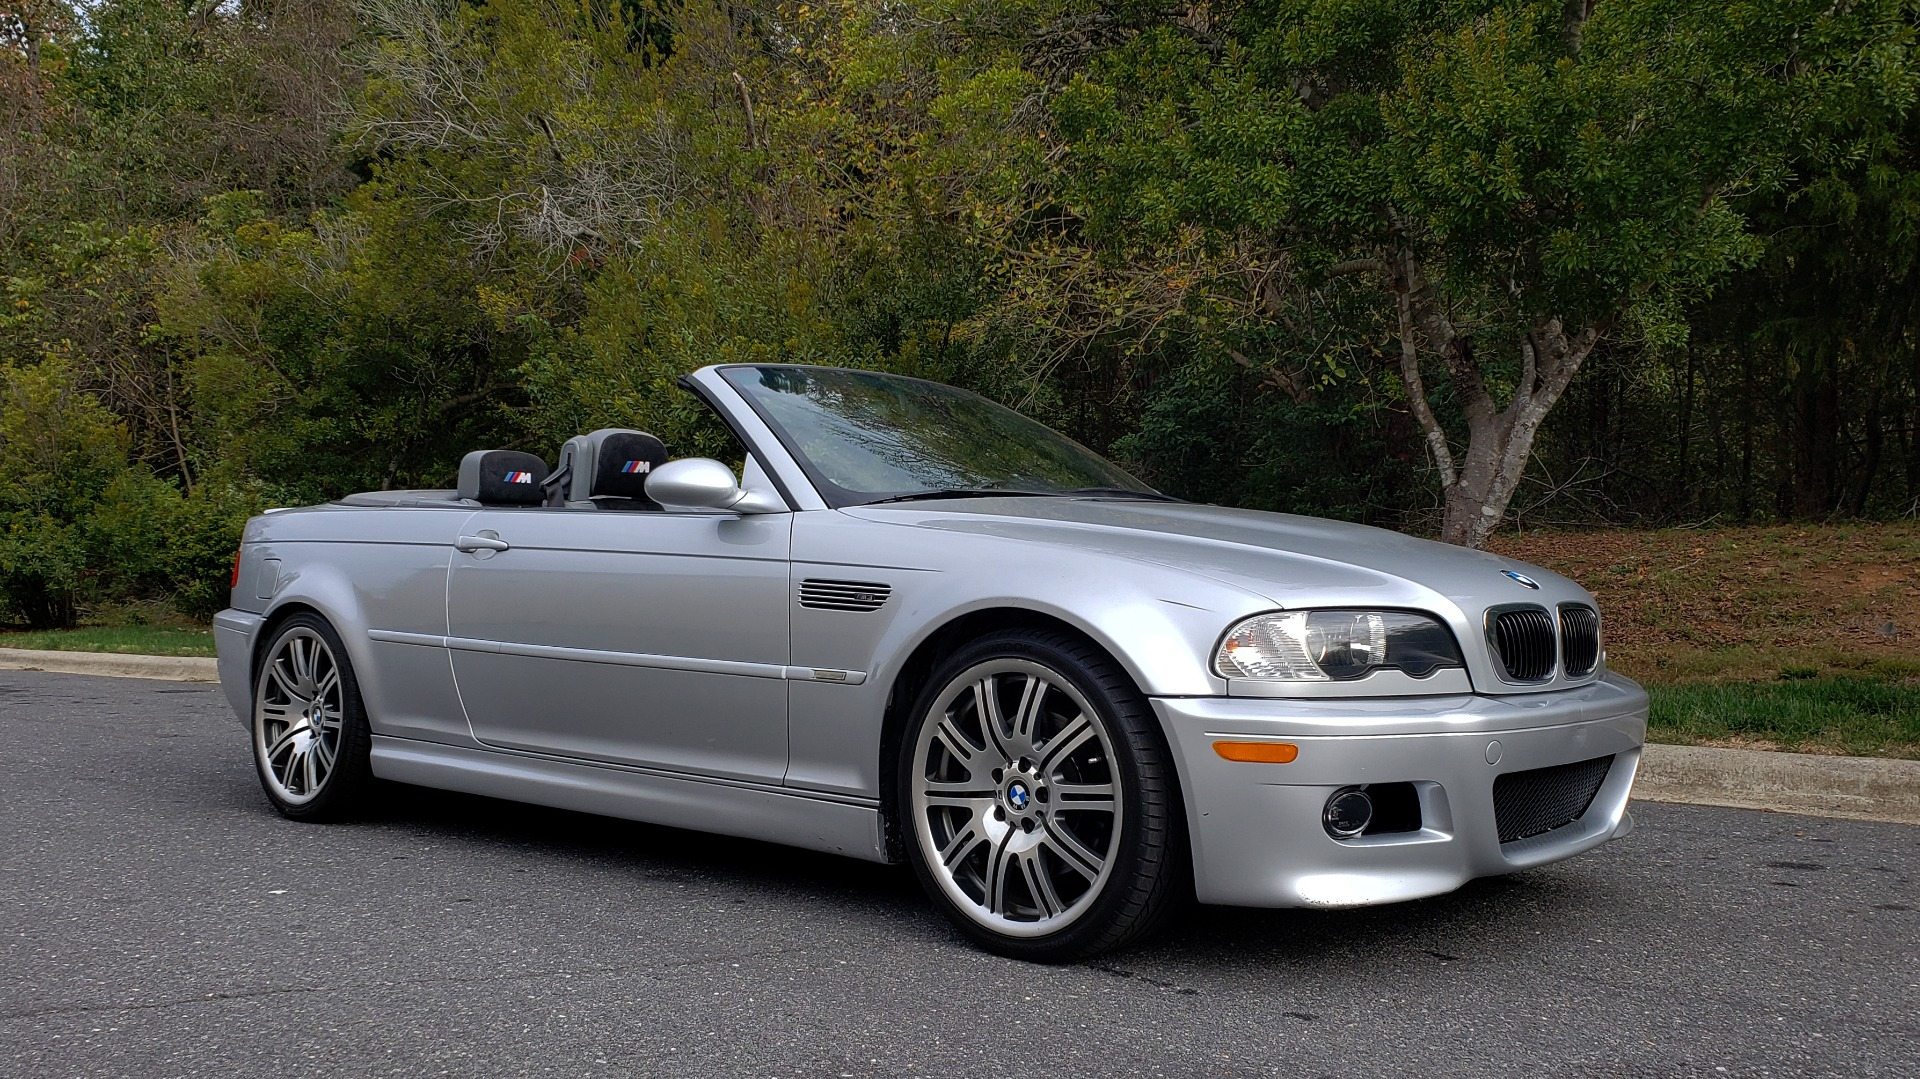 Used 2002 BMW M3 CONVERTIBLE / 6-SPD MAN / XENON / 19IN WHEELS for sale Sold at Formula Imports in Charlotte NC 28227 7